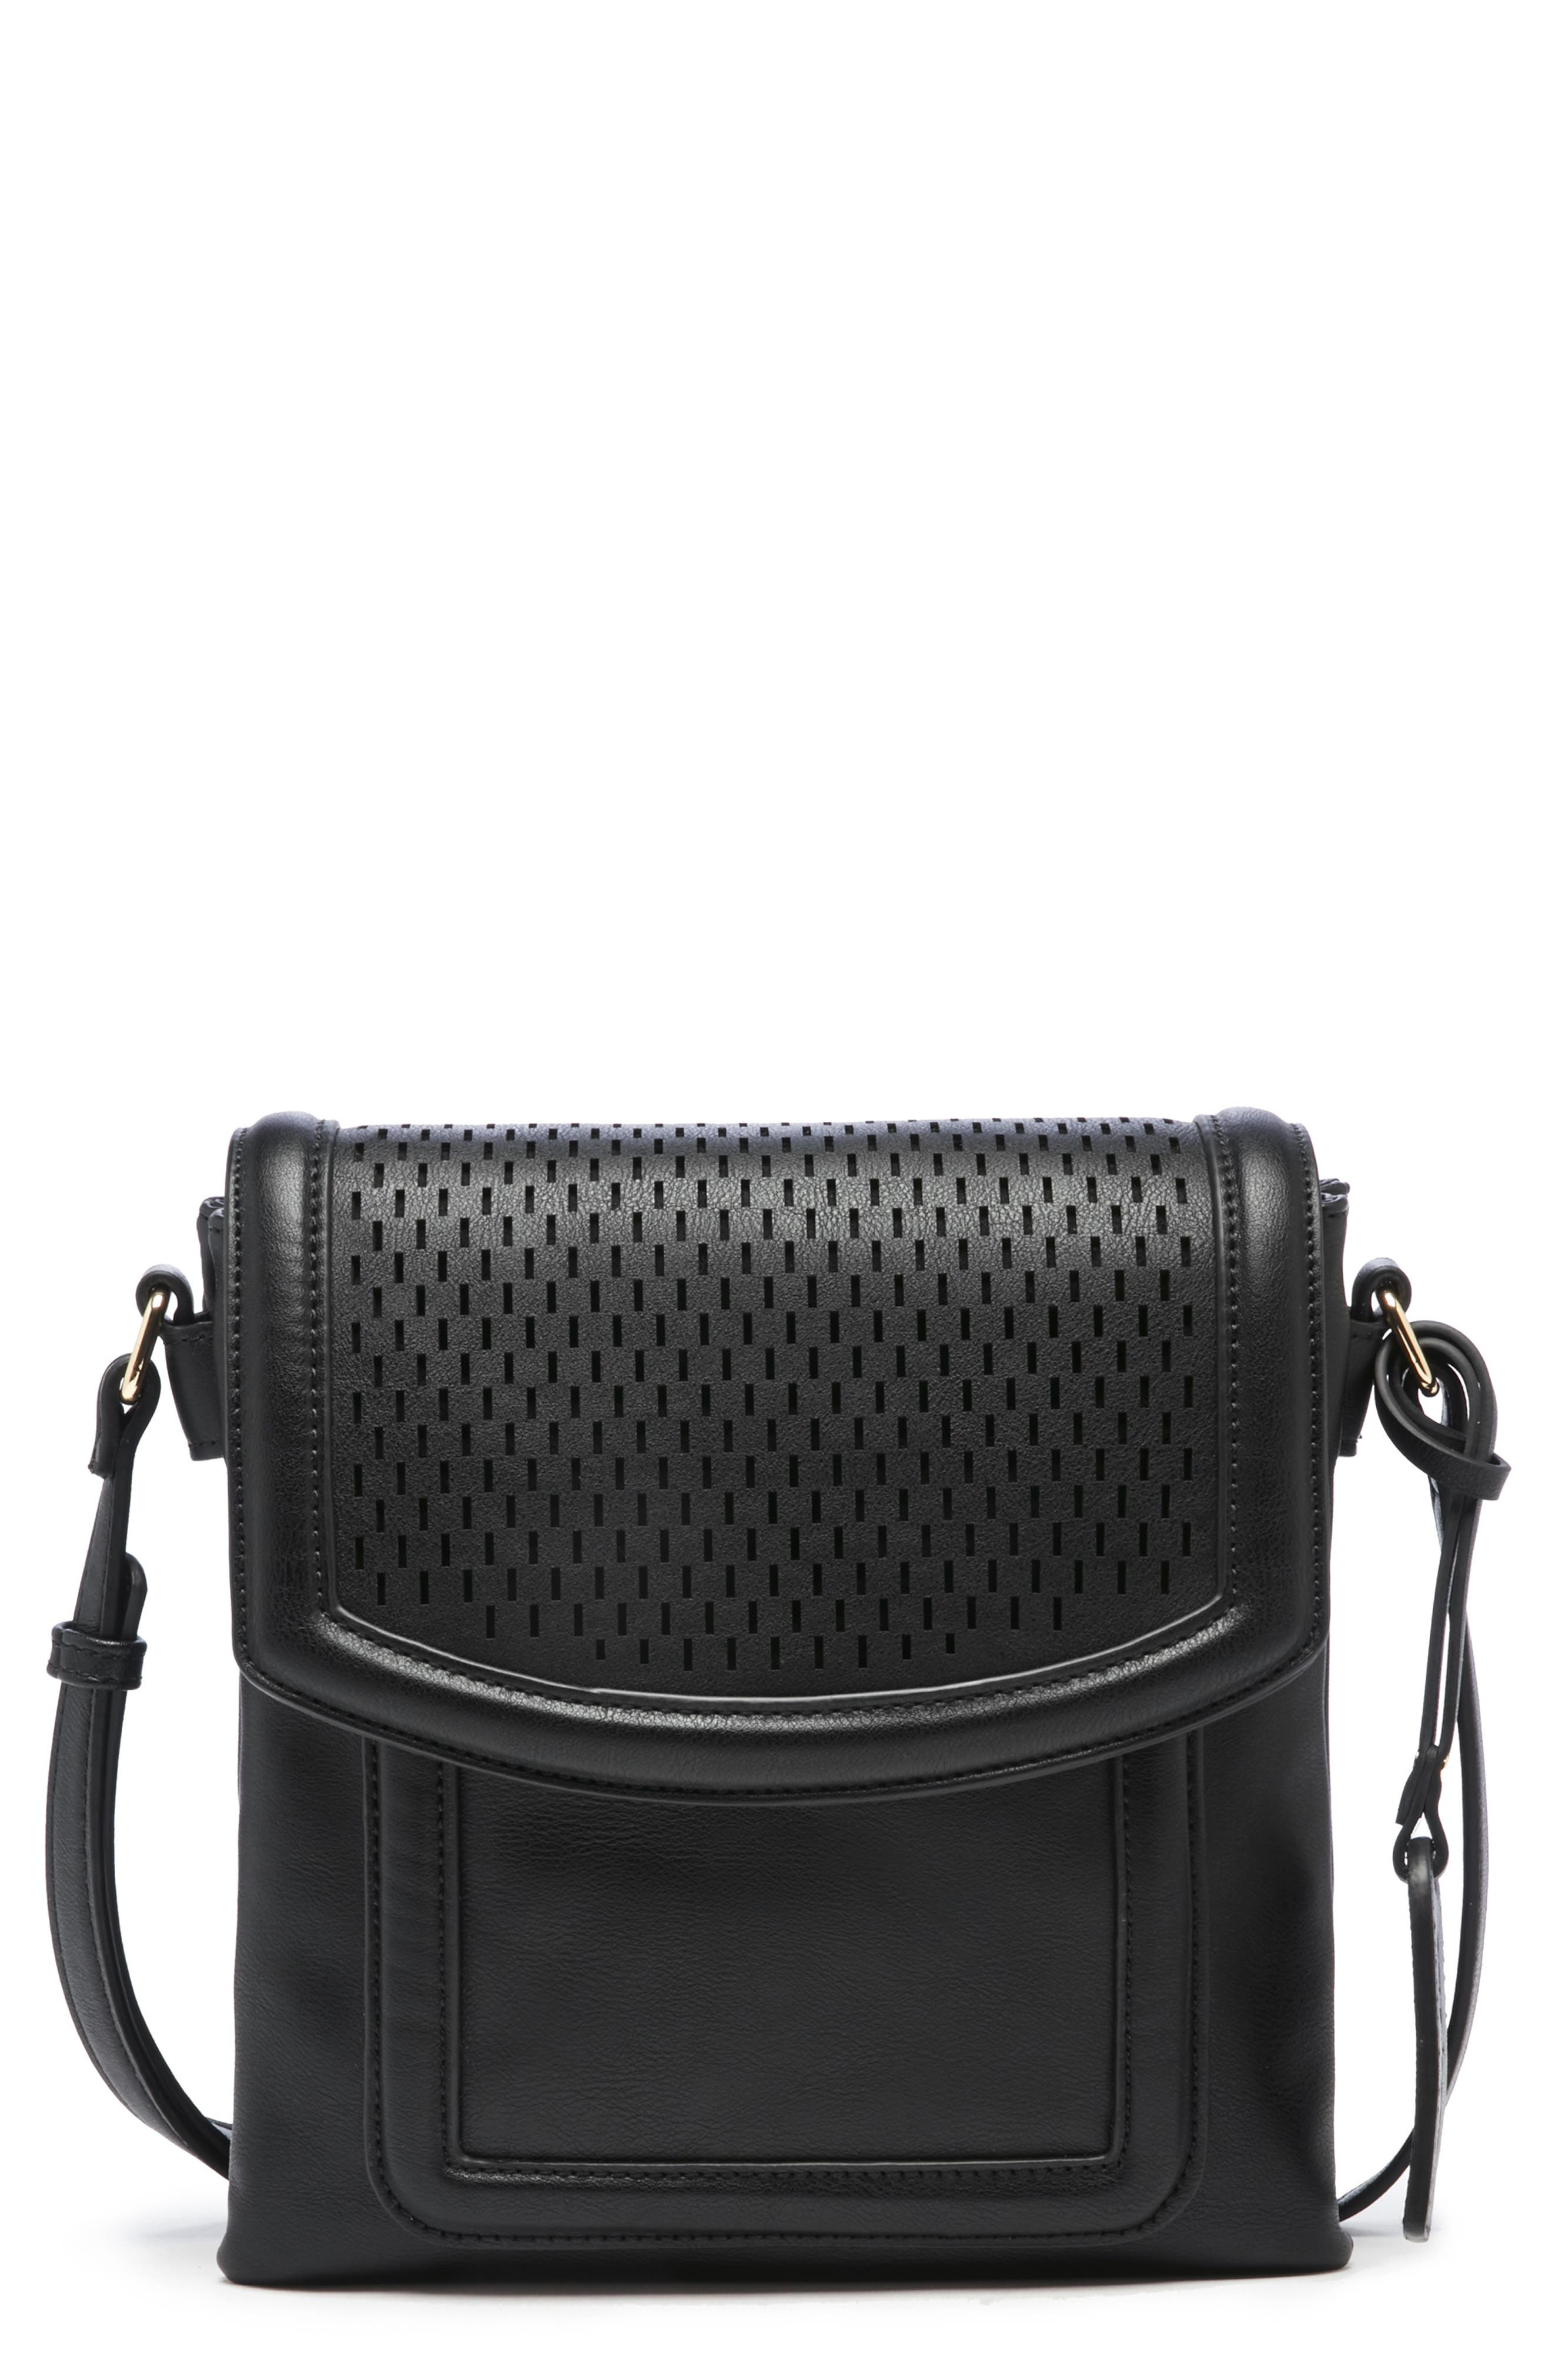 SOLE SOCIETY Daisa Faux Leather Crossbody Bag, Main, color, 001